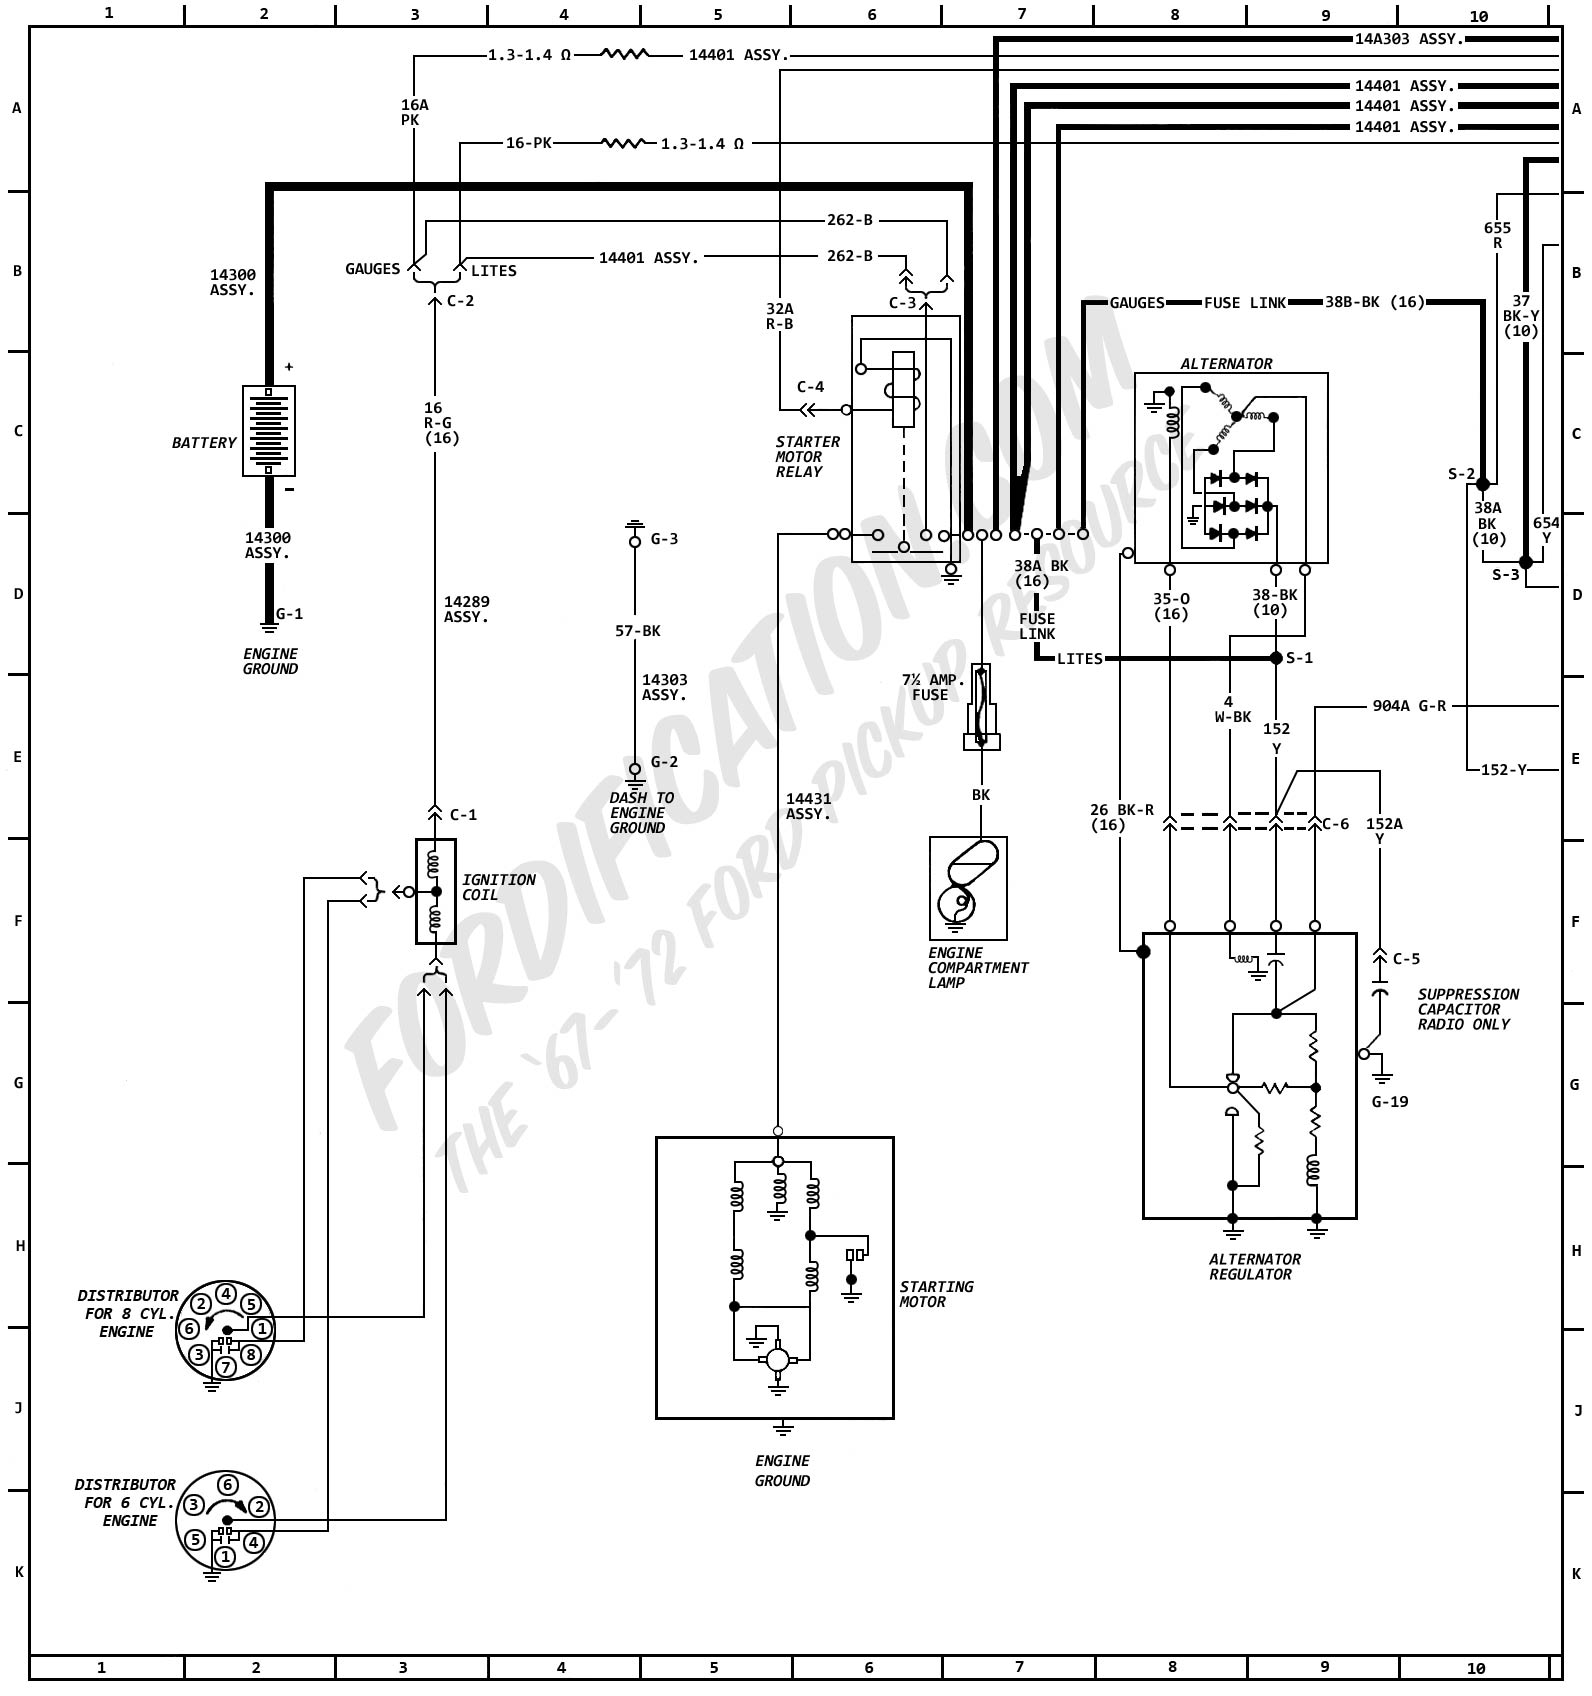 1967 C30 Wiring Diagram Detailed Diagrams 1974 Dodge Challenger Harness 1970 Ford Mustang Heater Another Blog About 2012 Charger Stereo